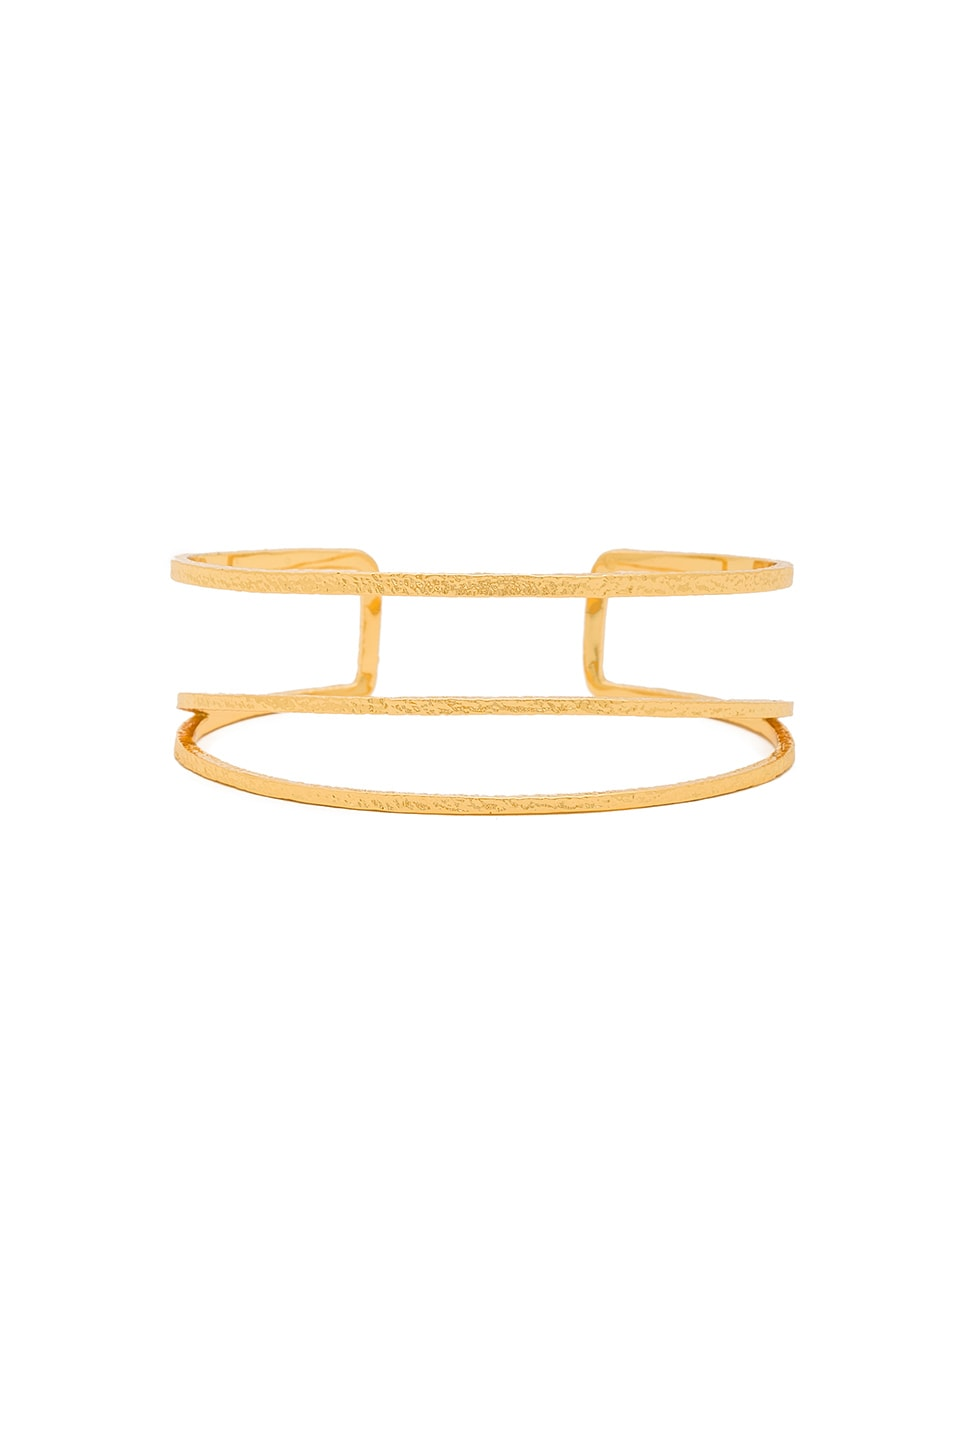 gorjana Paloma Cuff in Gold